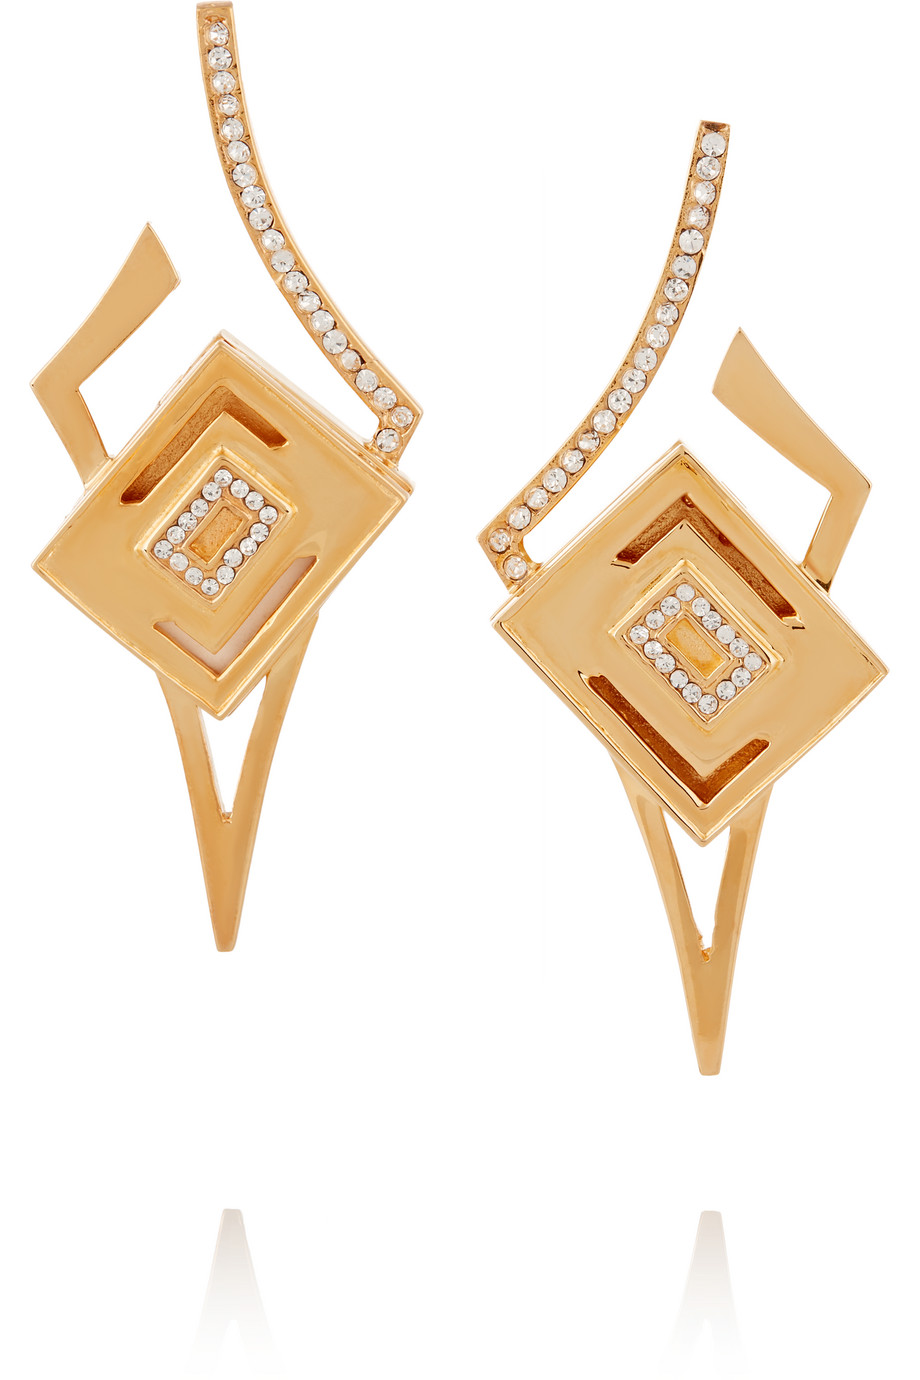 Kilian Lights & Reflections Gold-Plated Swarovski Crystal Earrings, Women's